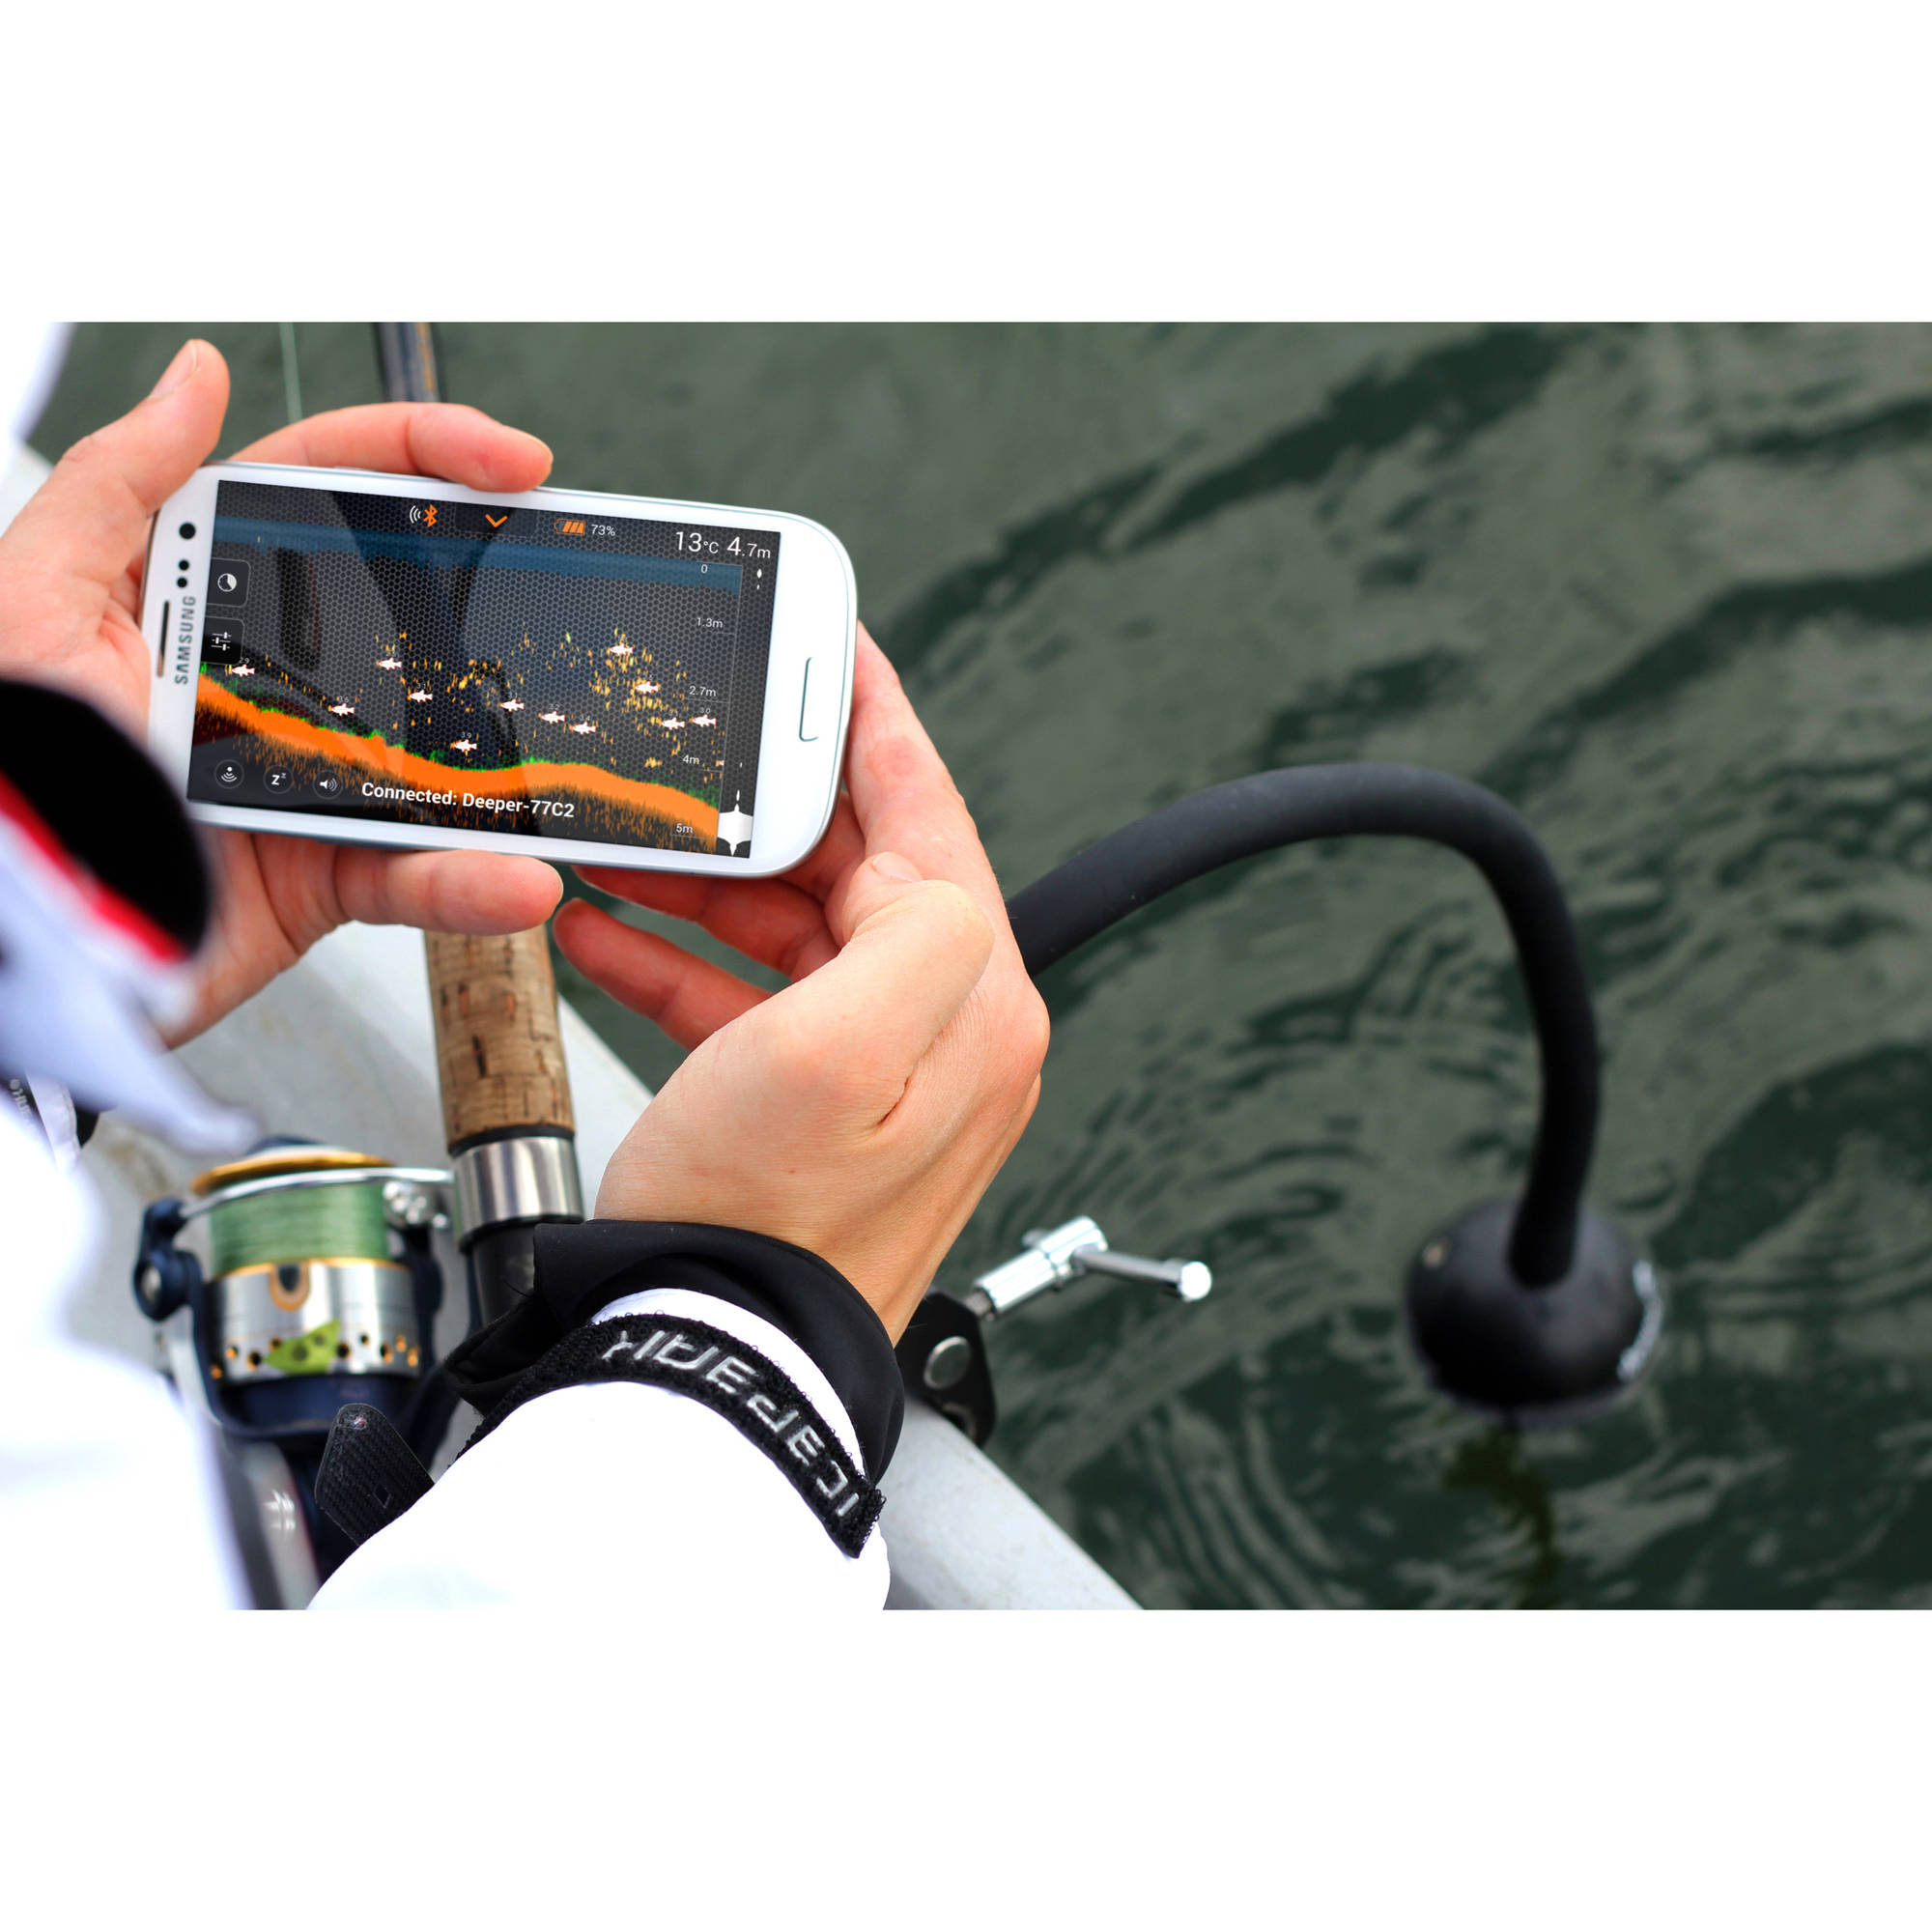 deeper portable sonar fish finder - walmart, Fish Finder